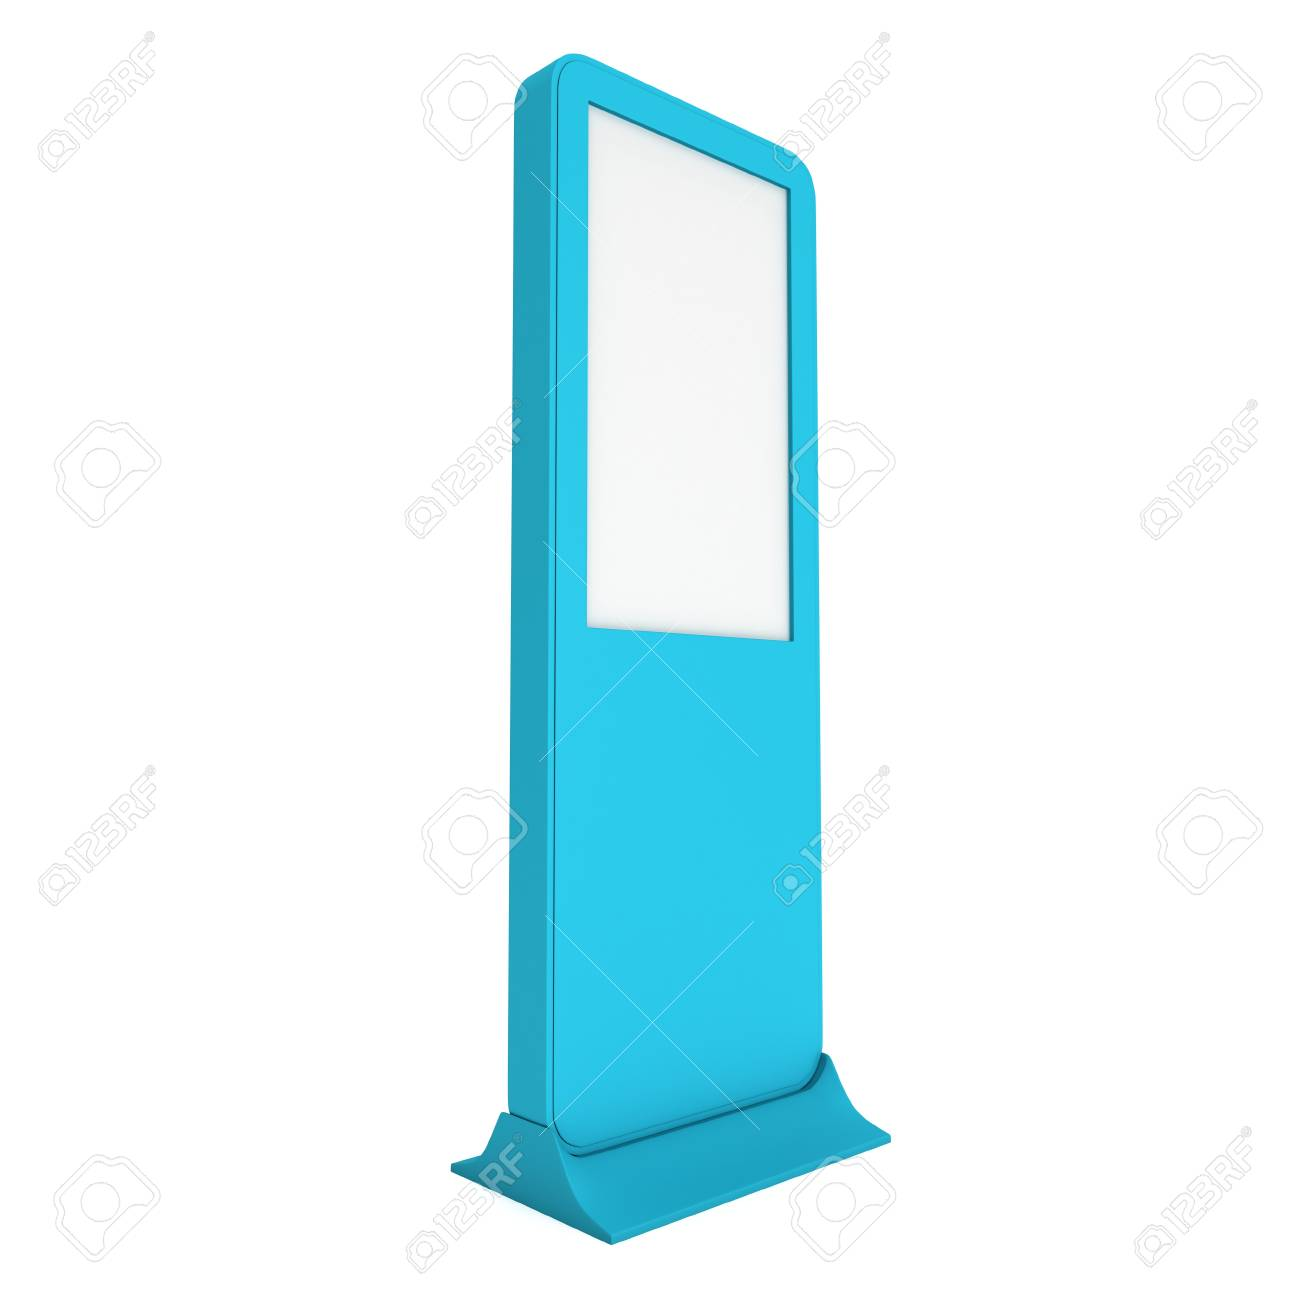 Expo Stands Kioska : Lcd kiosk stand. blank trade show booth. 3d render isolated on